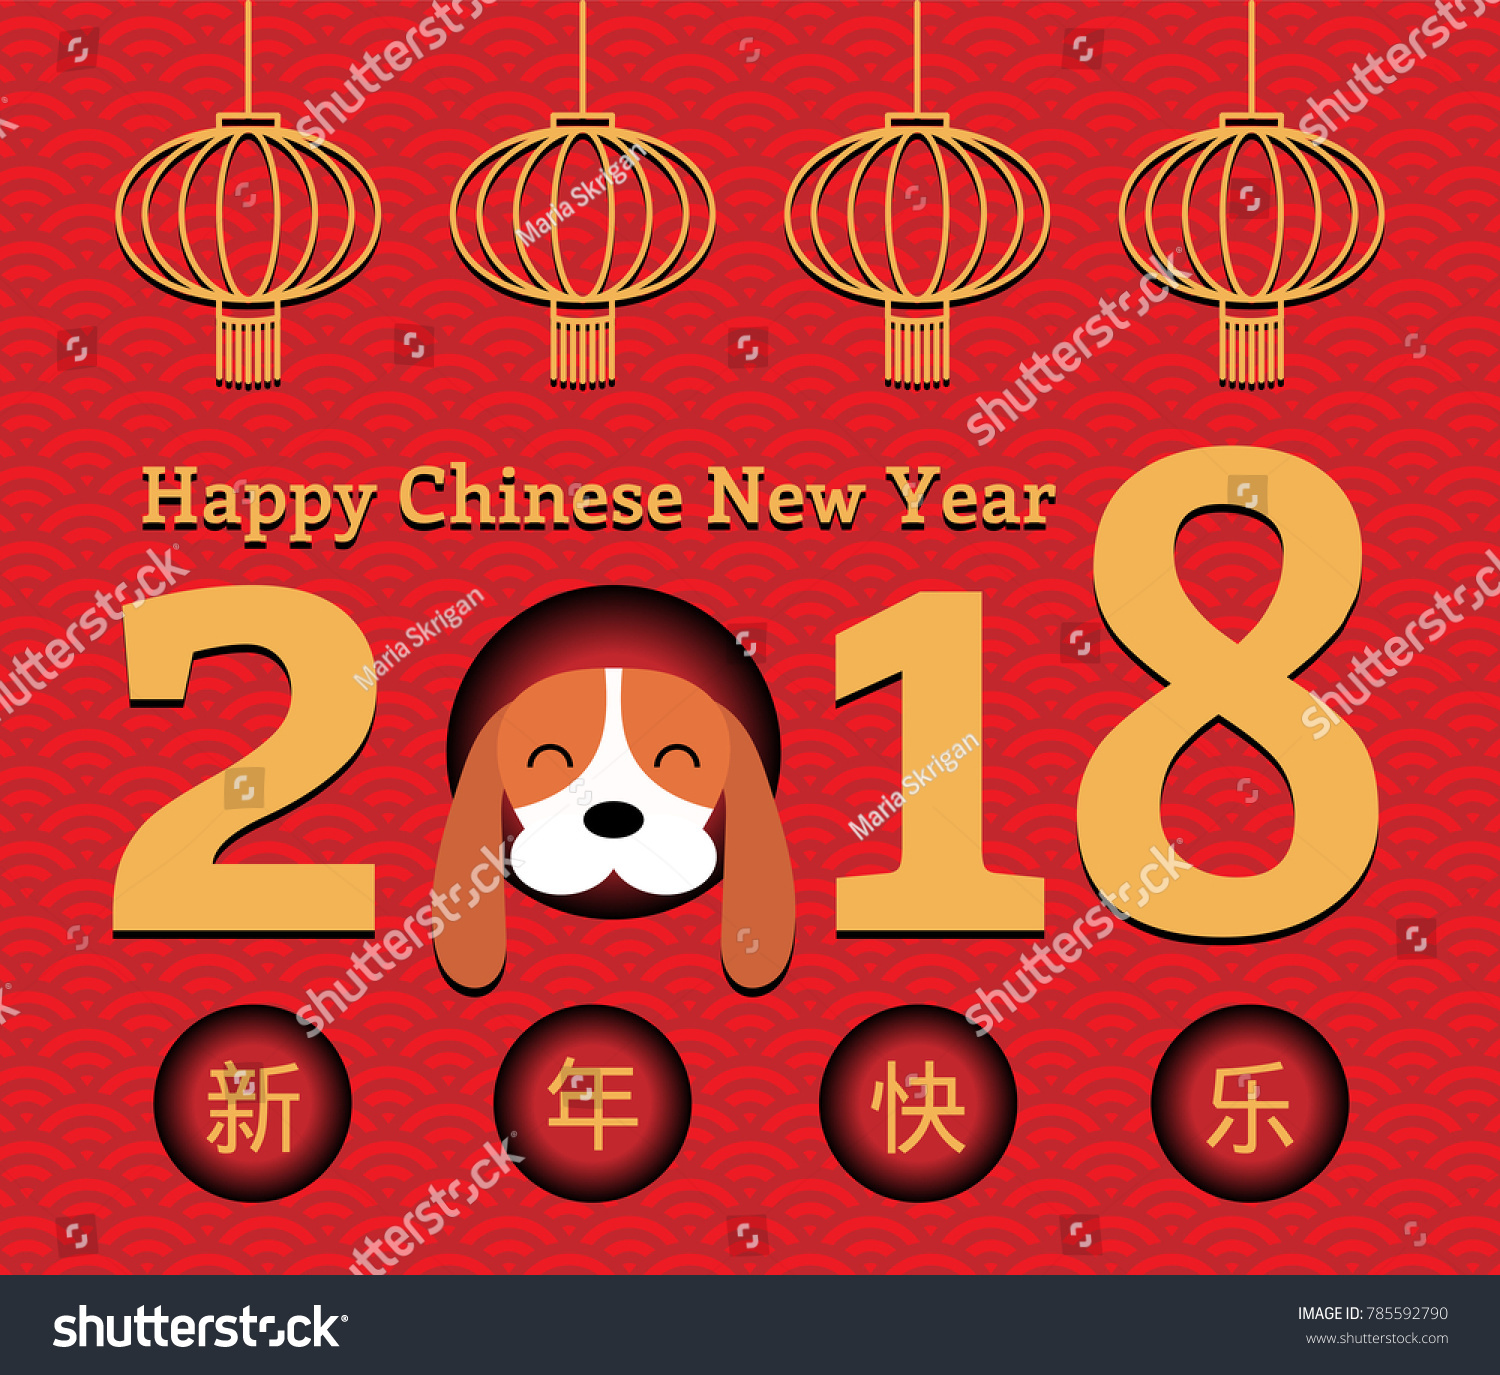 2018 chinese new year greeting card stok vektr 785592790 shutterstock 2018 chinese new year greeting card banner with cute funny cartoon dog numbers m4hsunfo